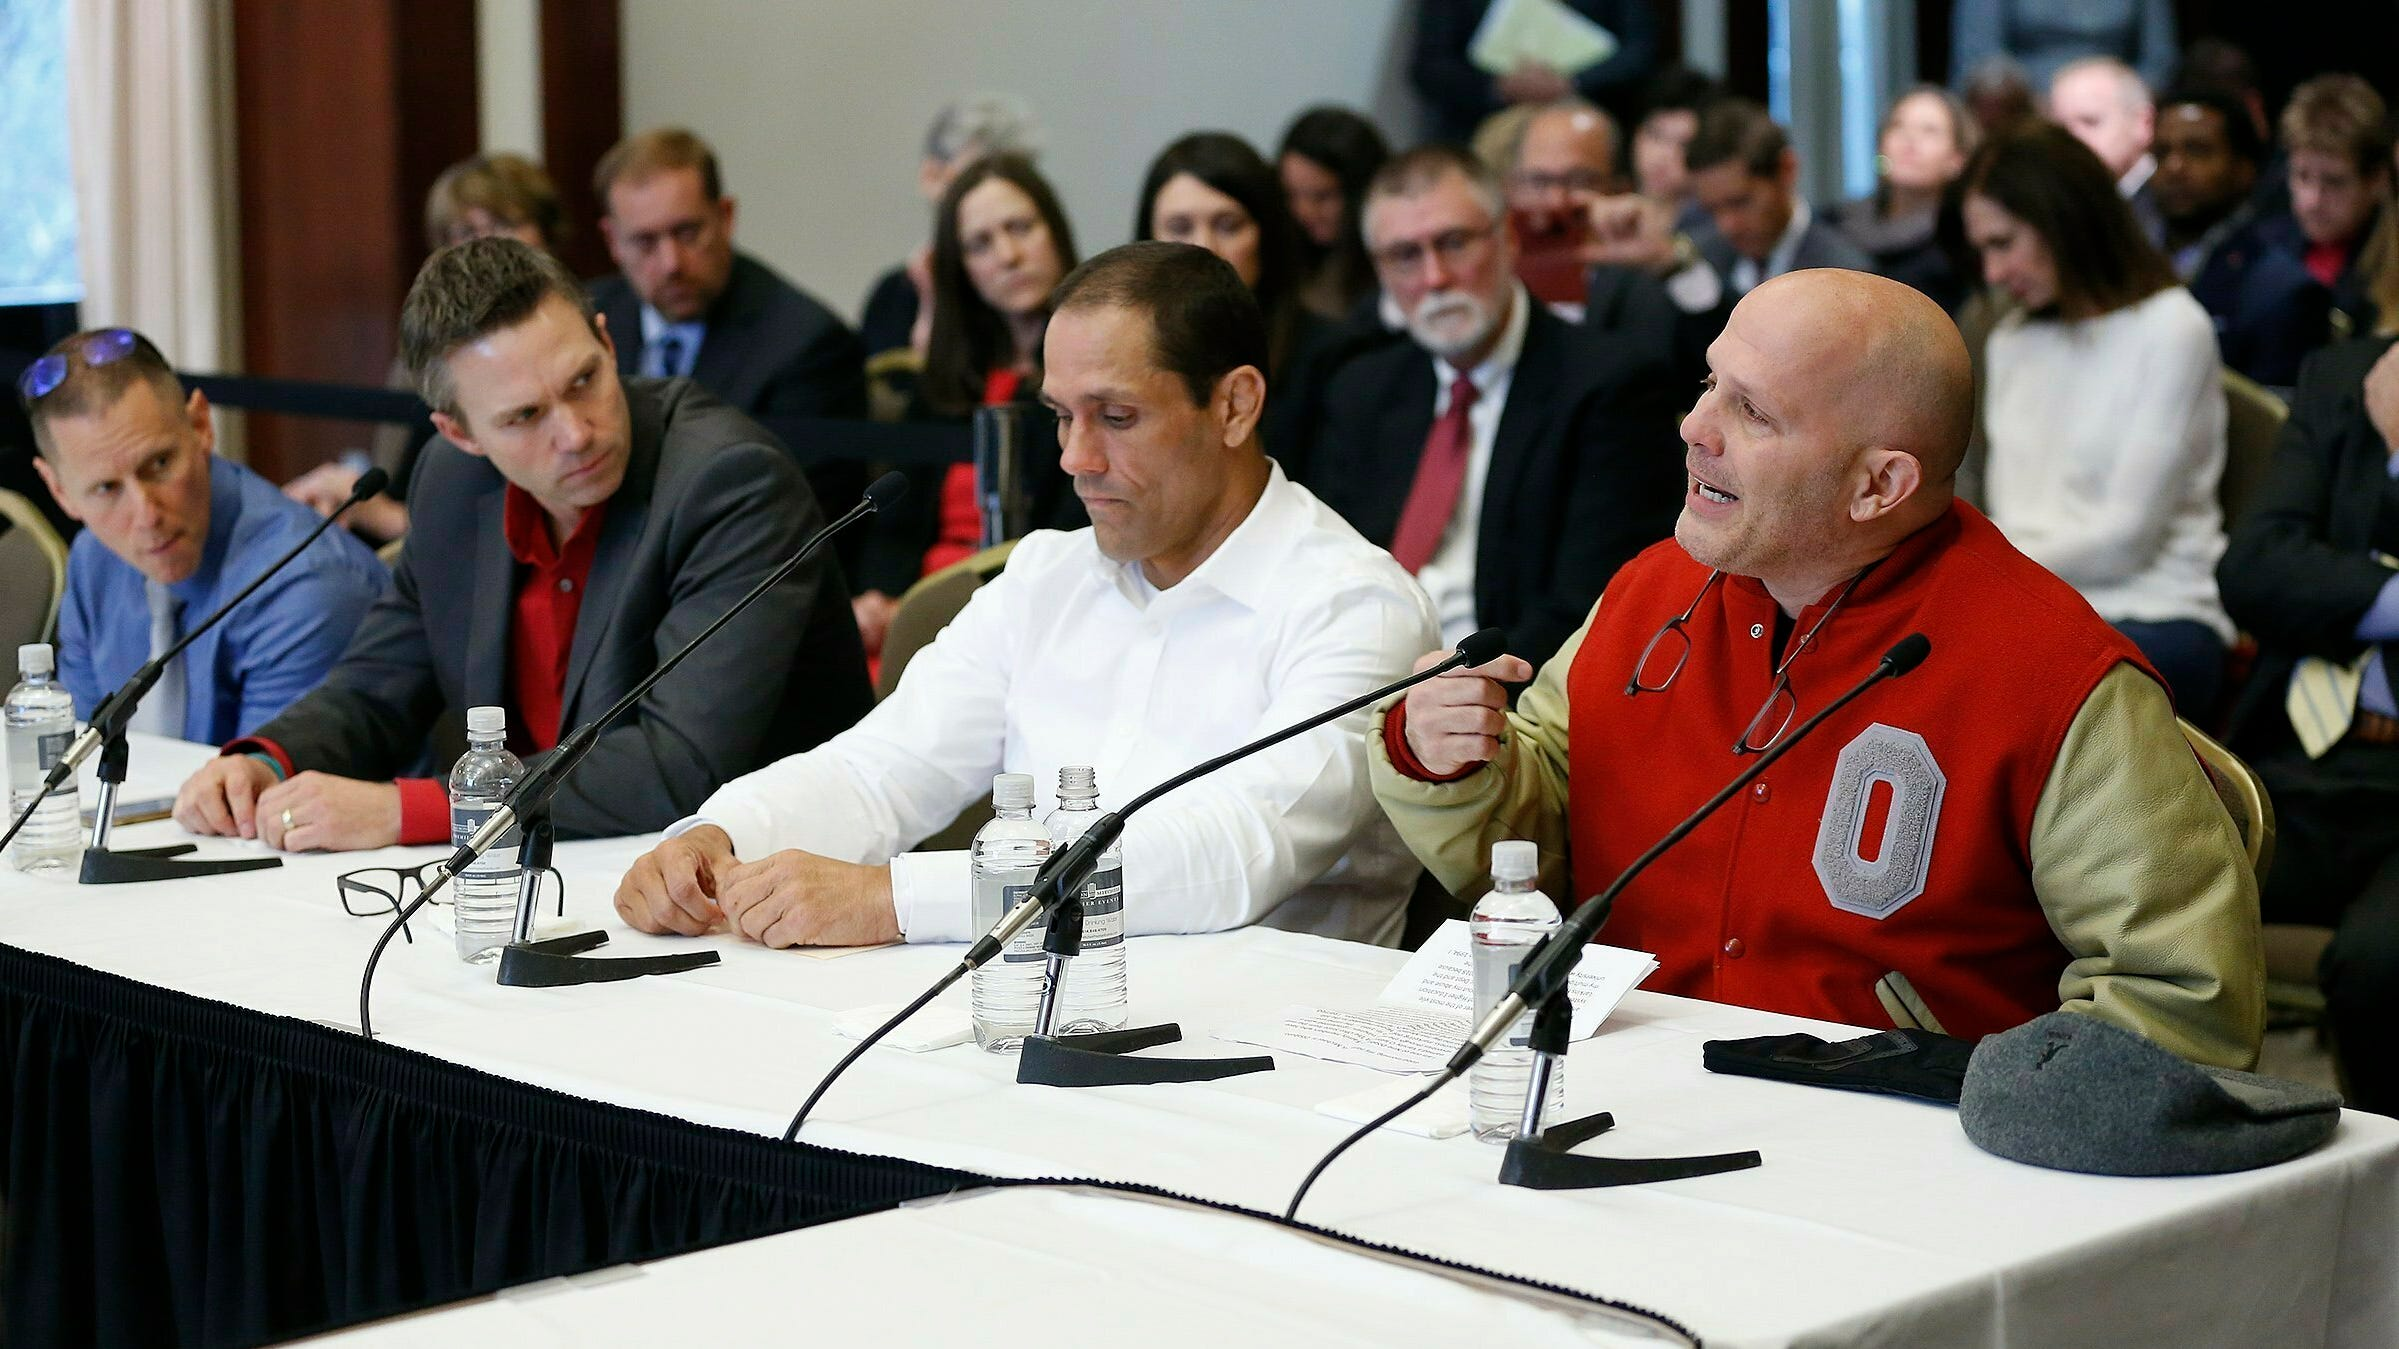 Of the 150-plus men alleging two decades of sexual misconduct by a former Ohio State team doctor, ex-wrestler Mike DiSabato has been the loudest.